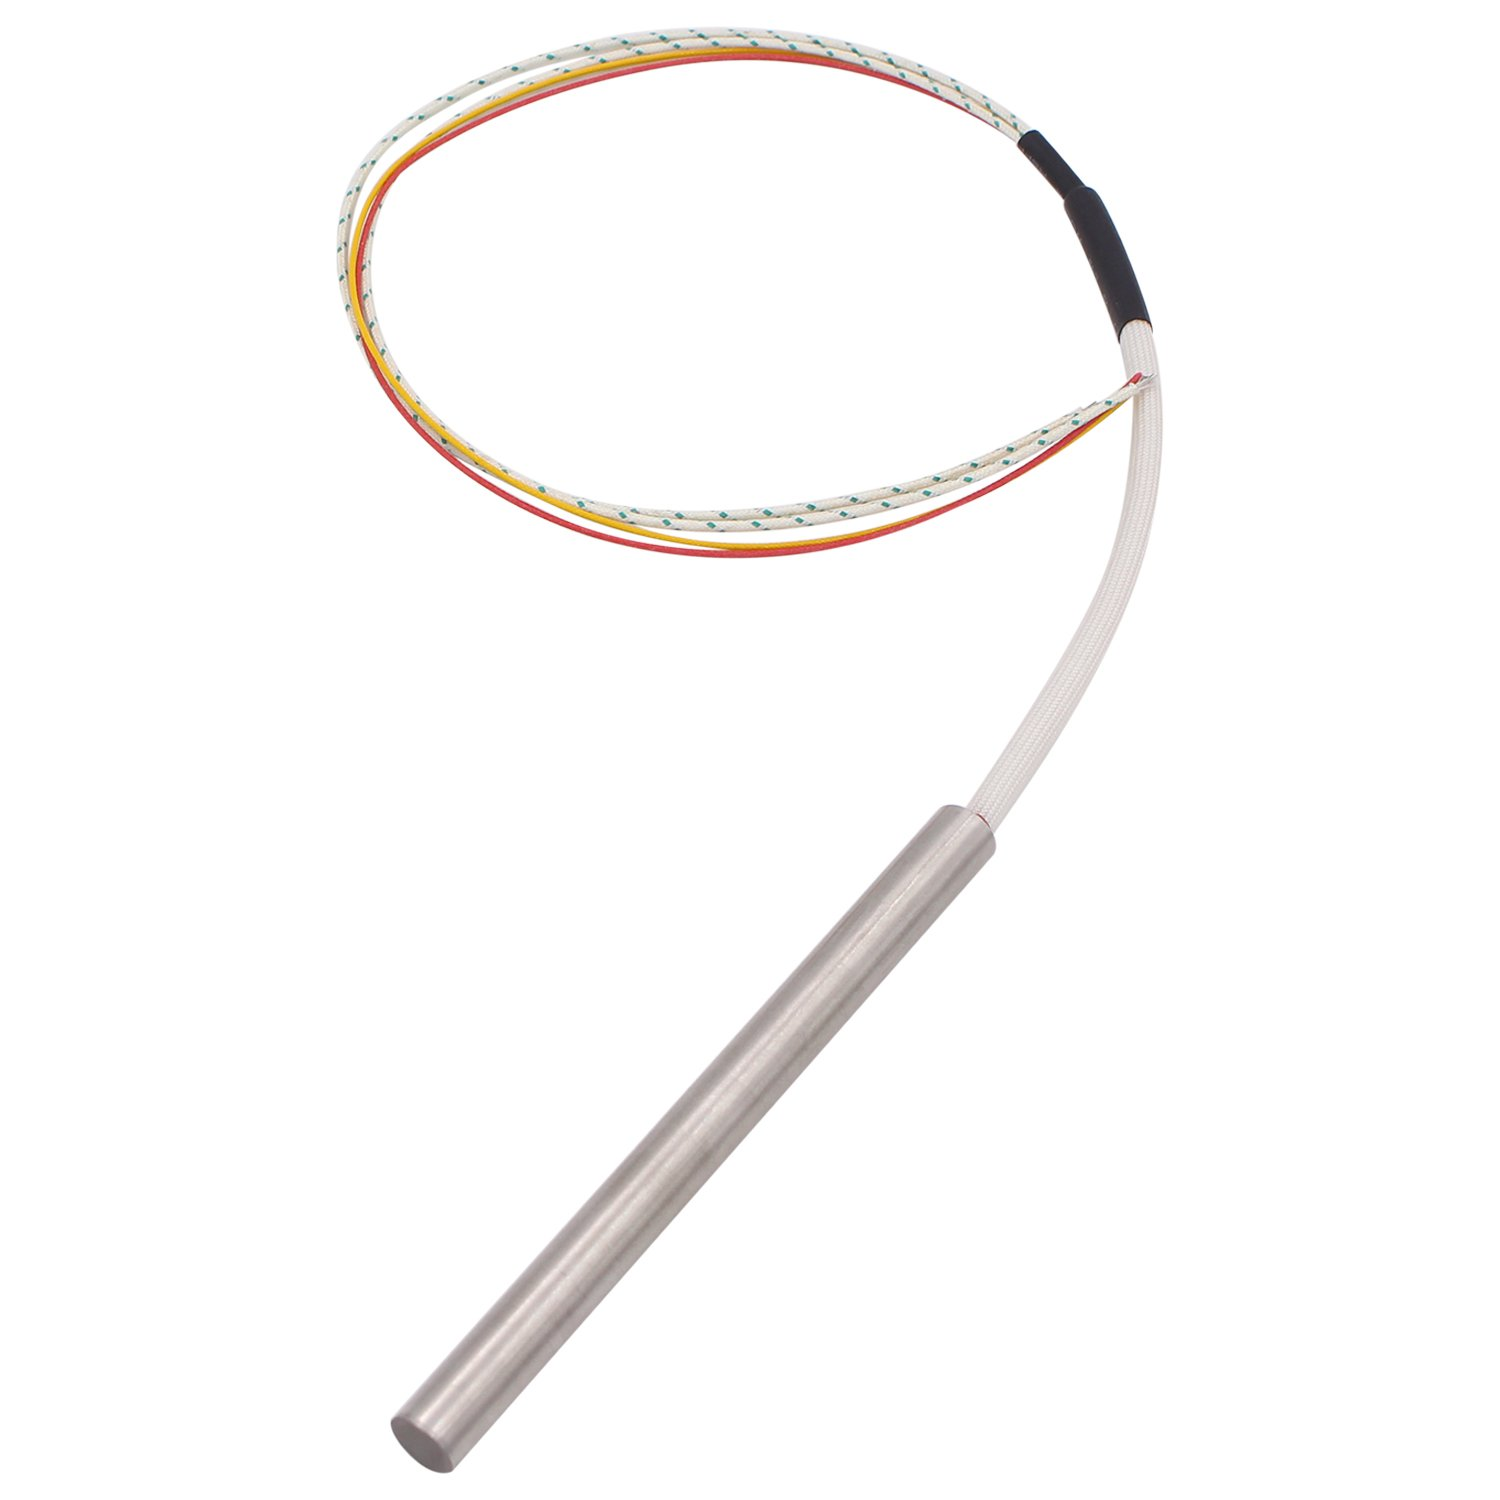 Dernord Cartridge Heater with Thermocouple, 1/2'' Diameter, 6'' Length, 240V 750W Internally Mounted Leads Heating Element Replacement